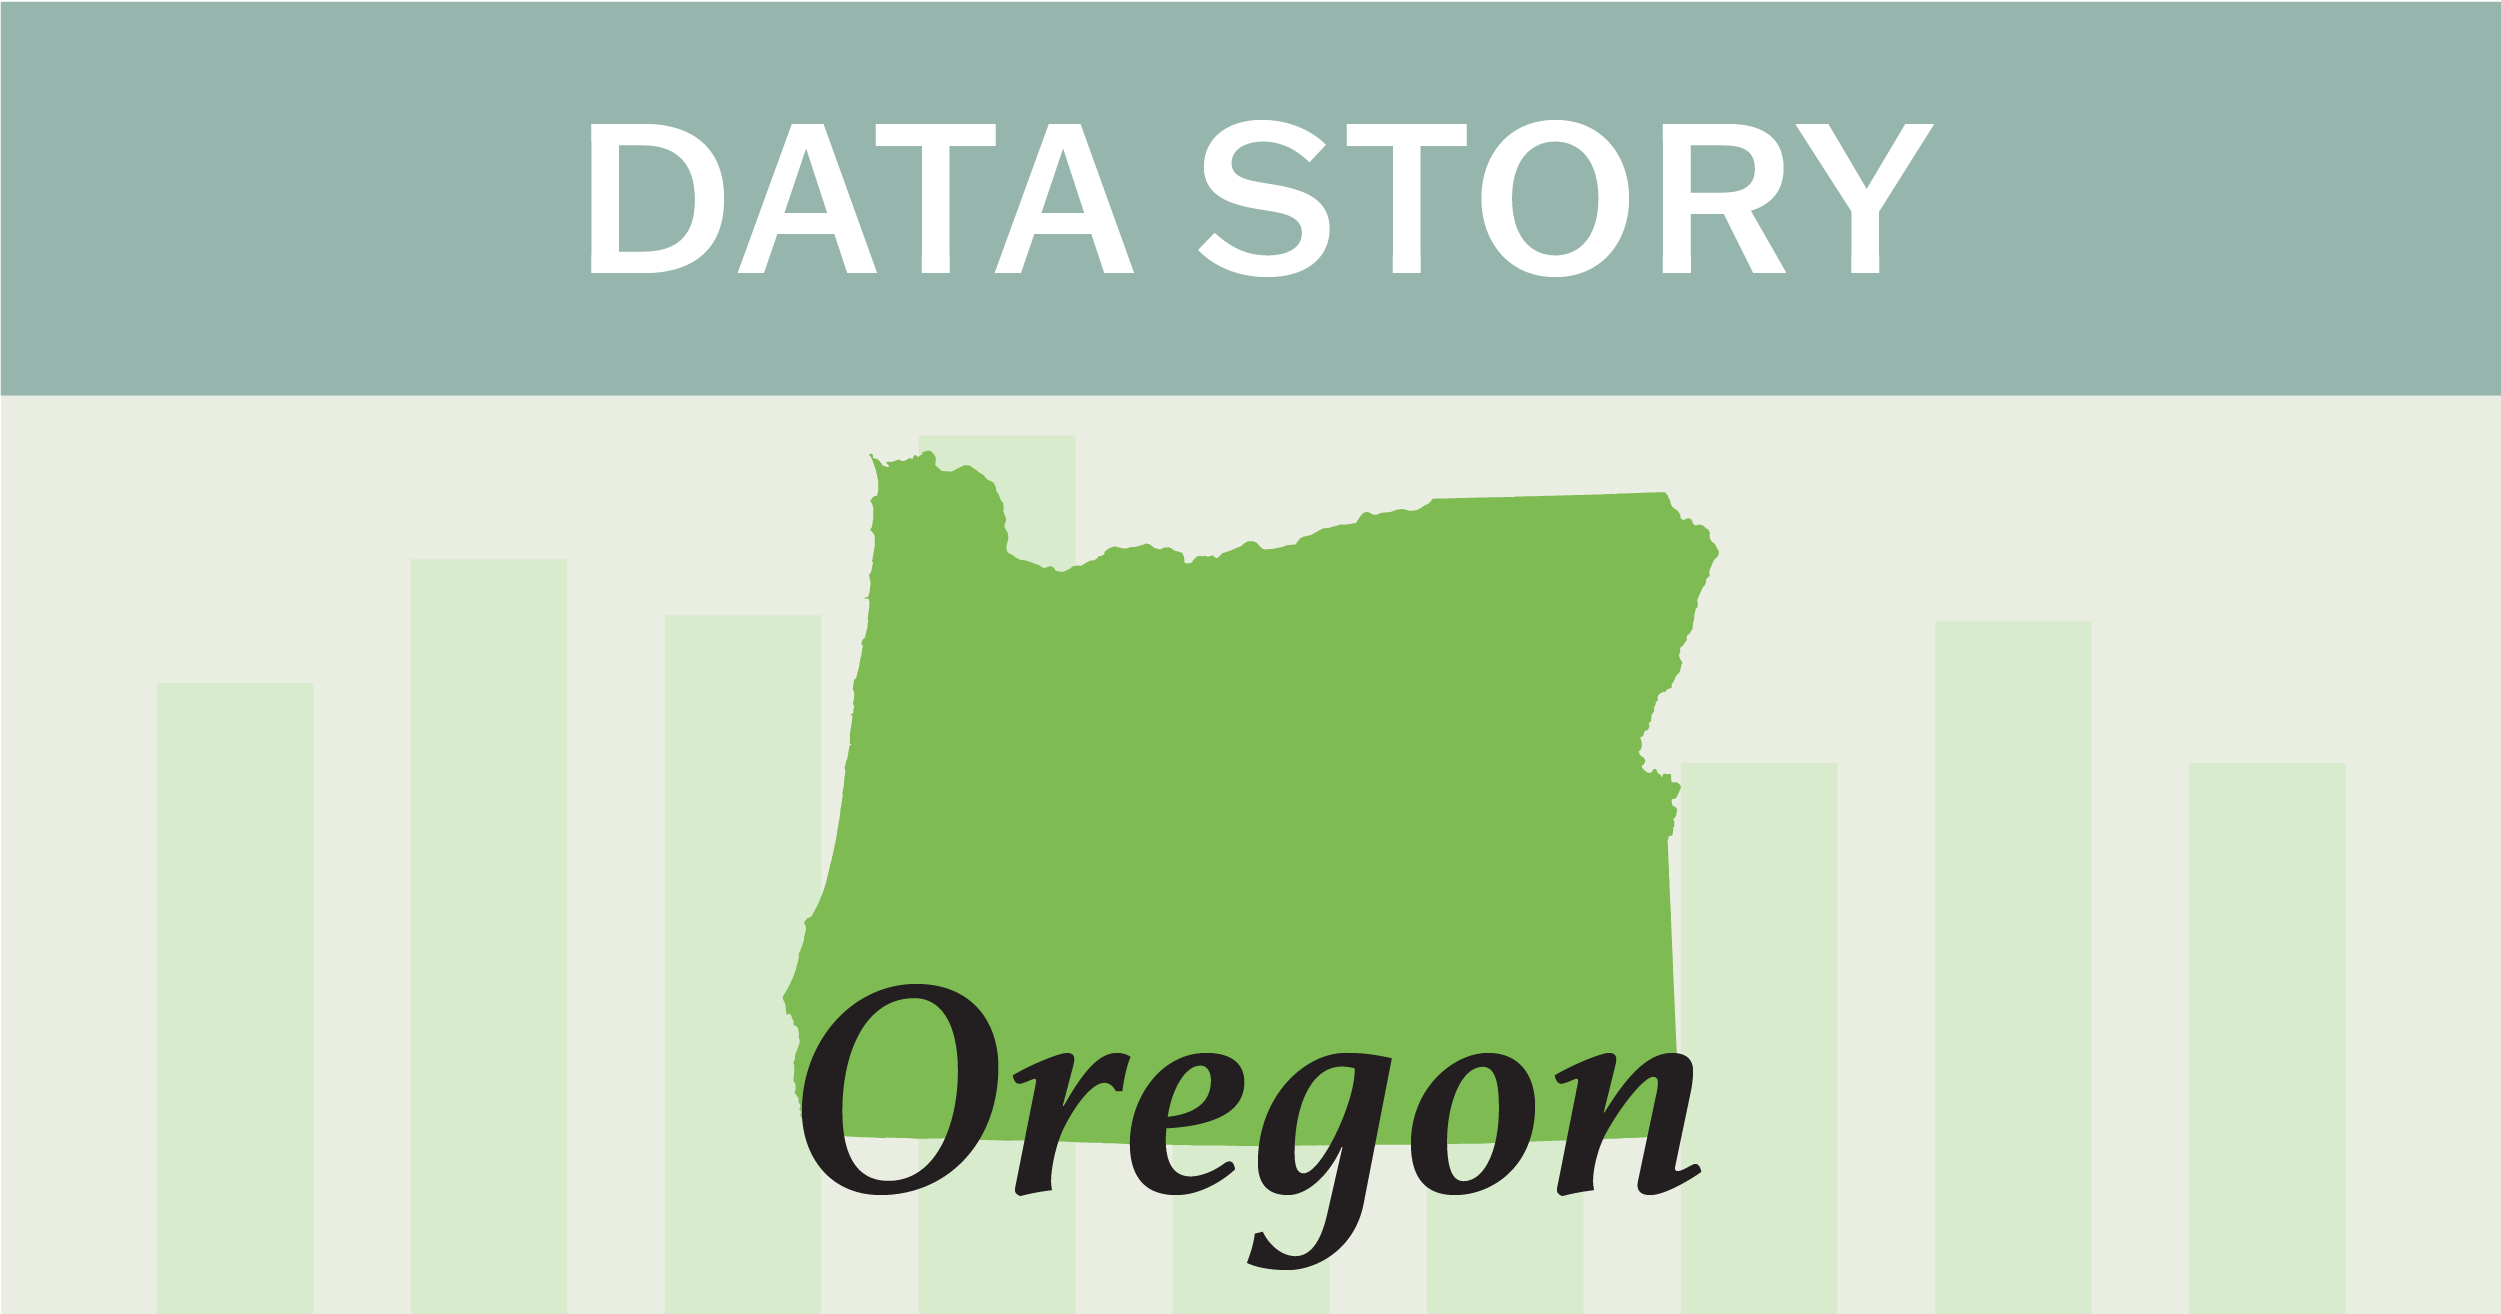 Outline of the state of Oregon.